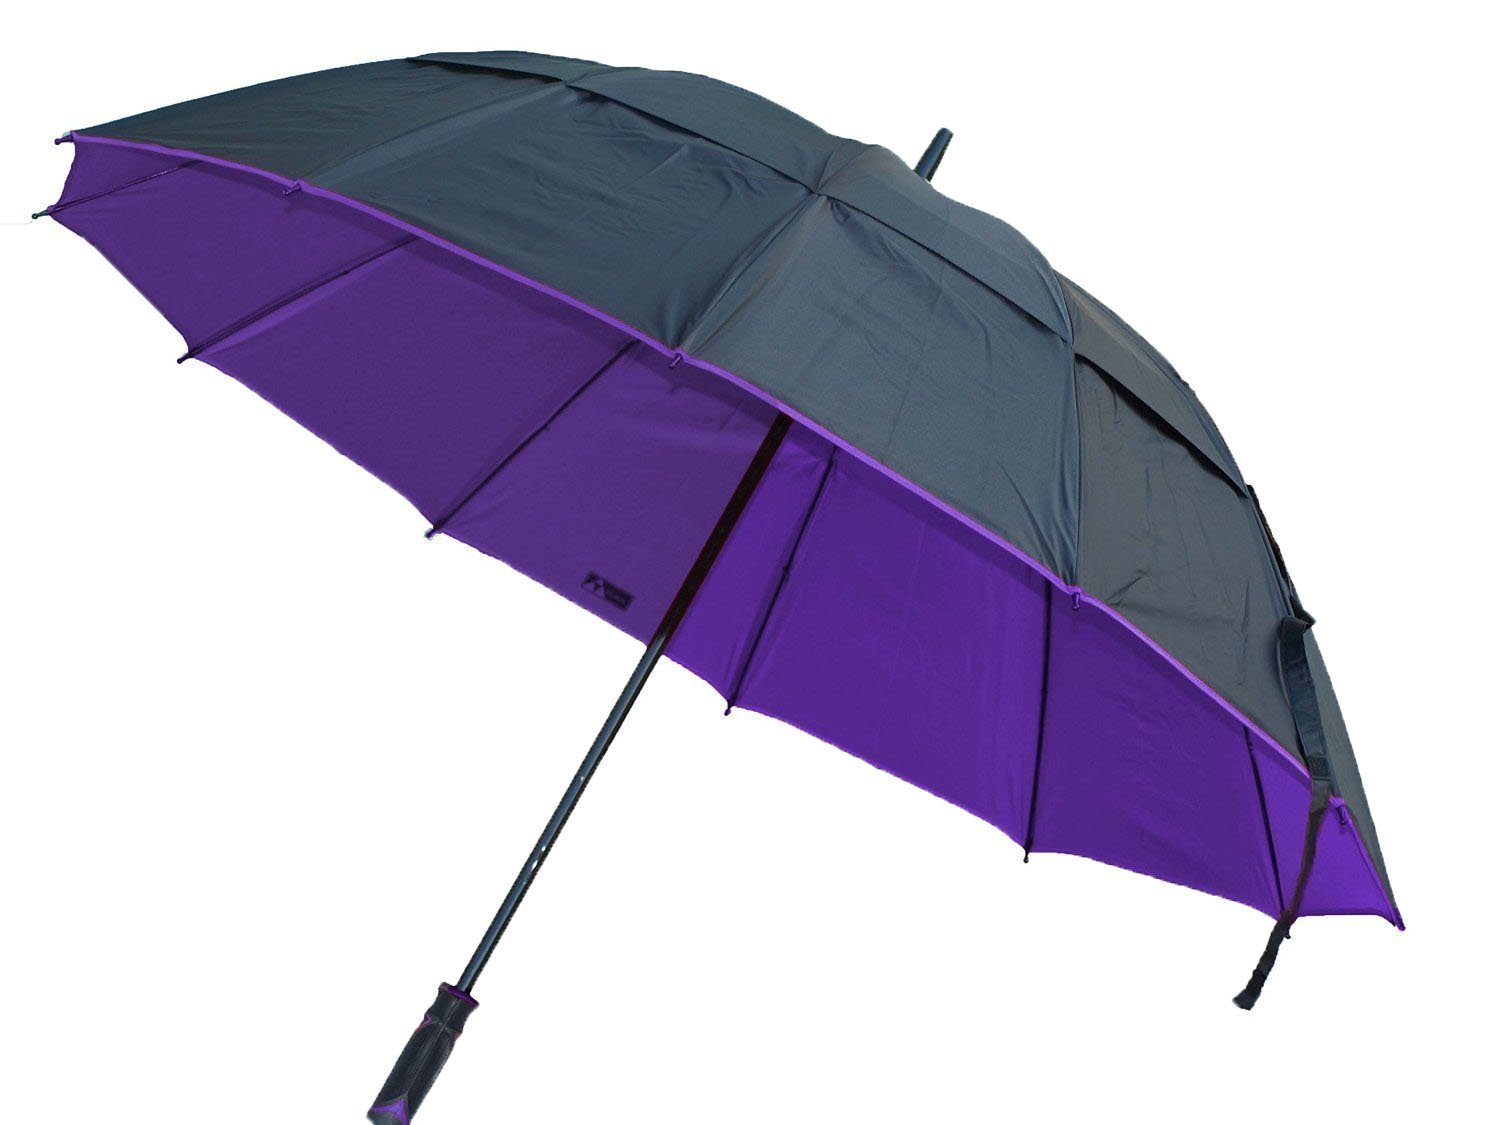 Black Aspen 62'' Golf Umbrella Double Vented Wind Resistant Canopy 190 Thread Count Nylon Fabric with Fiberglass Shaft, Black/Purple, X-Large